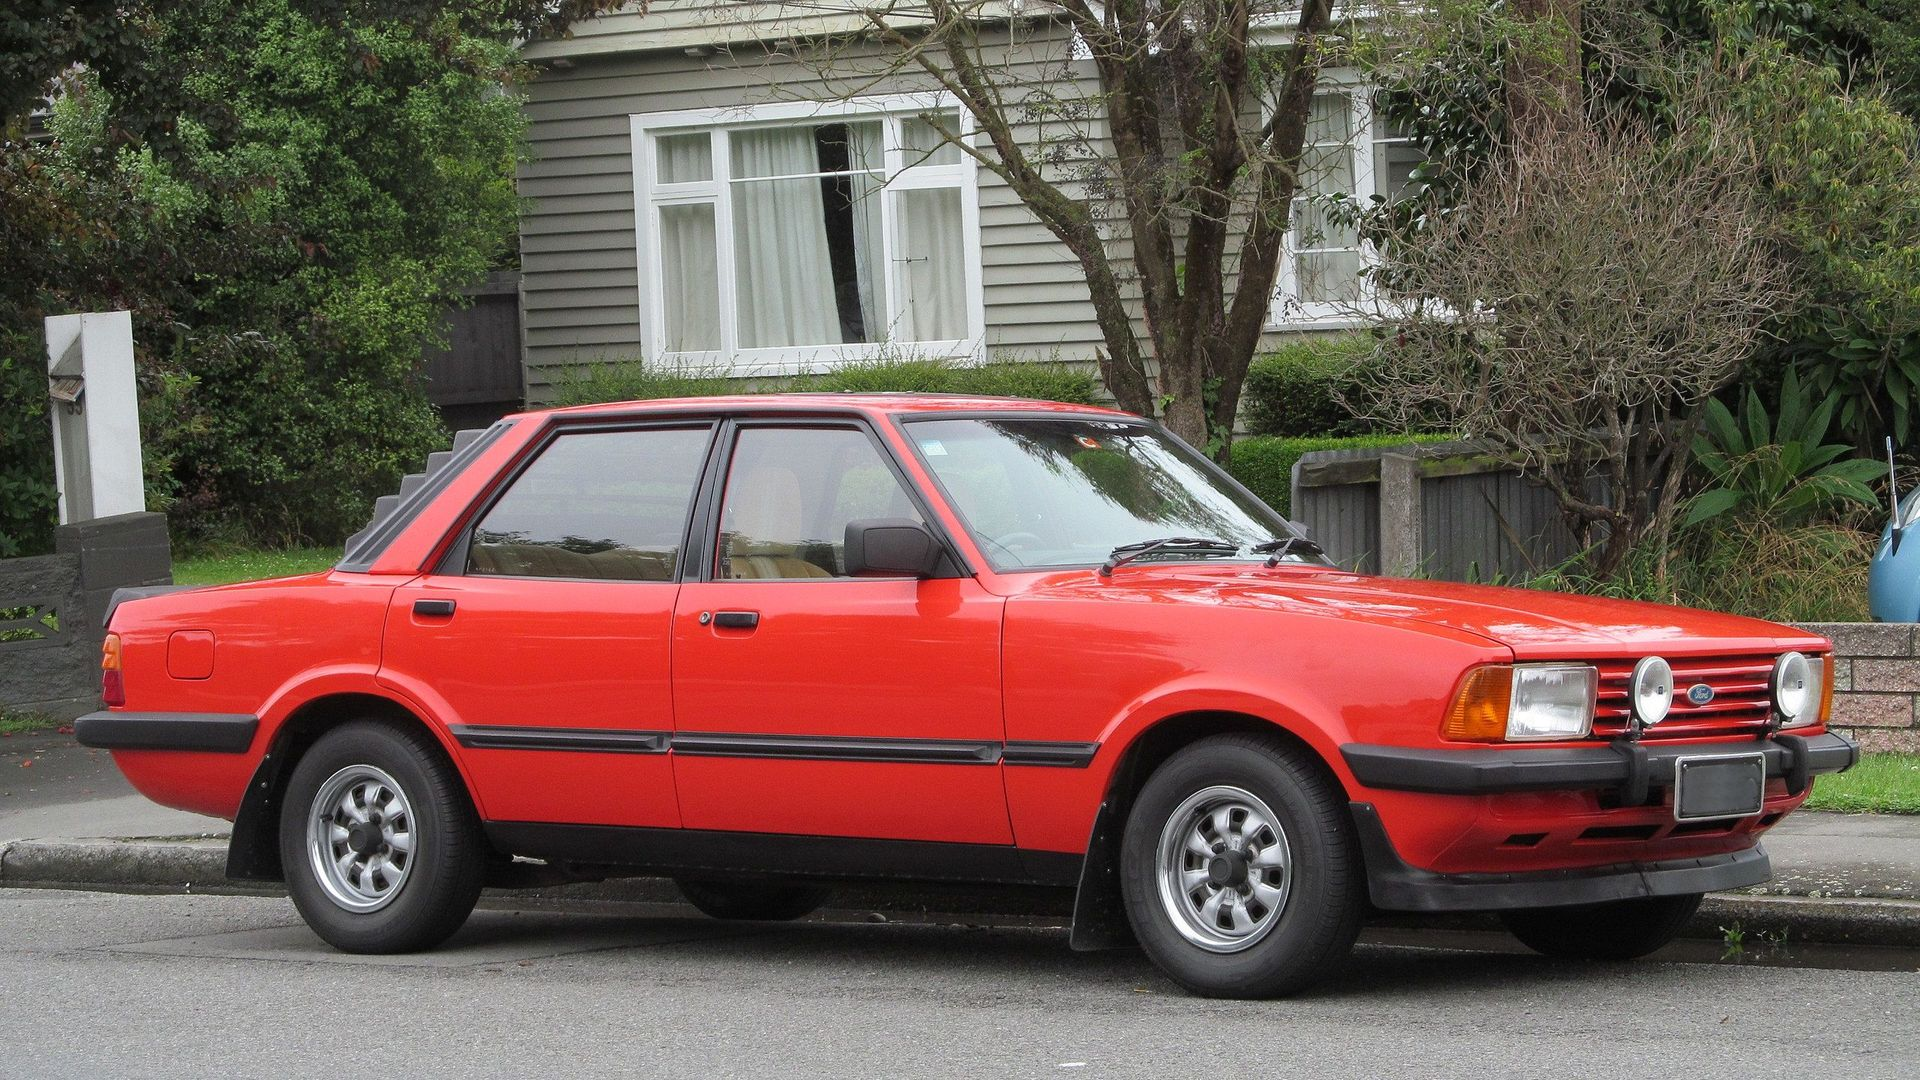 Howstuffworks: Can You Identify These Ford Cars From the '80s?